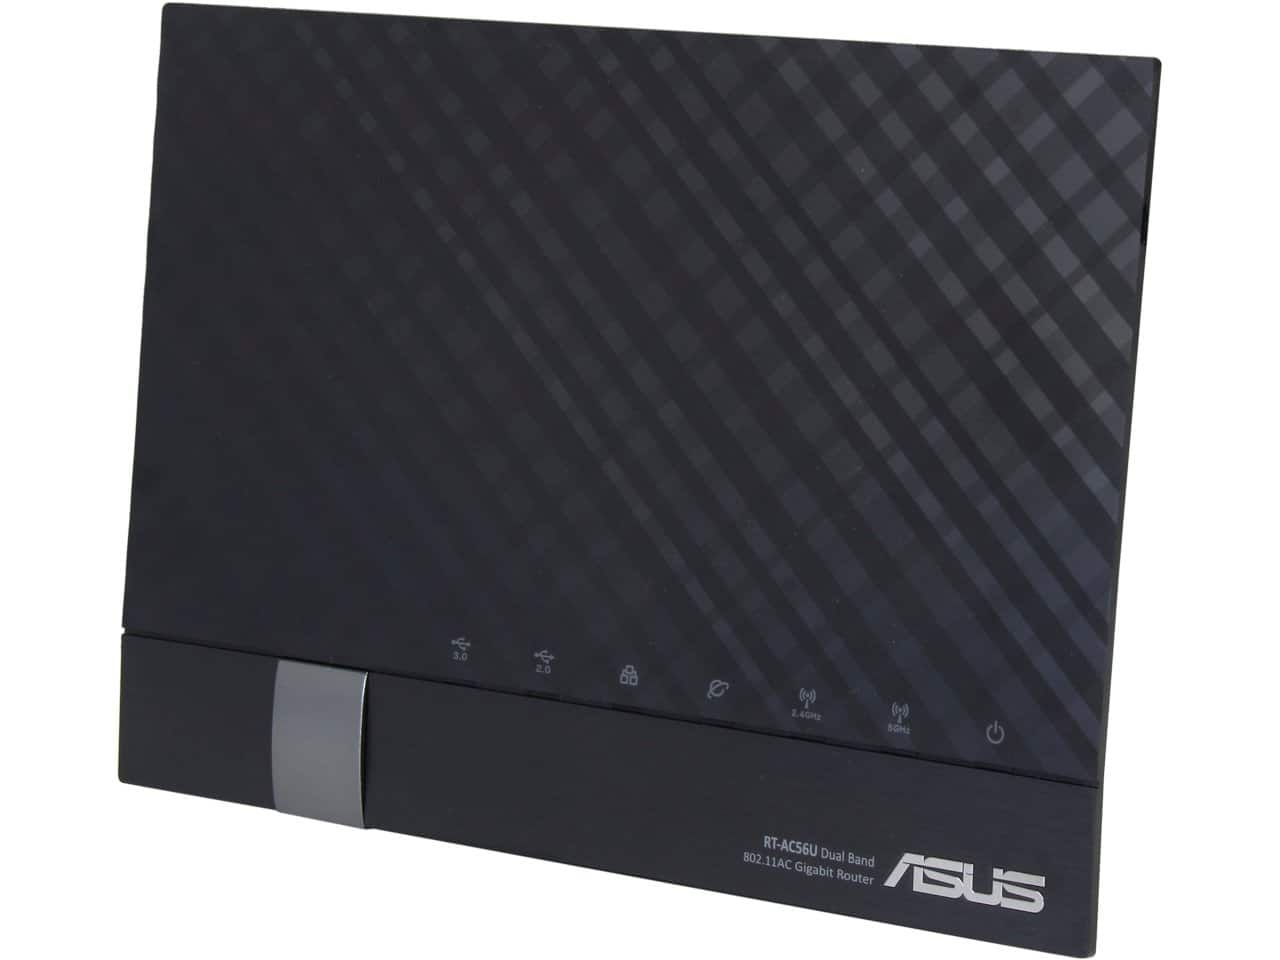 Asus RT-AC56U AC1200 Dual-Band Wireless Gigabit Router for $49.99 AR + Free Shipping @ Newegg.com